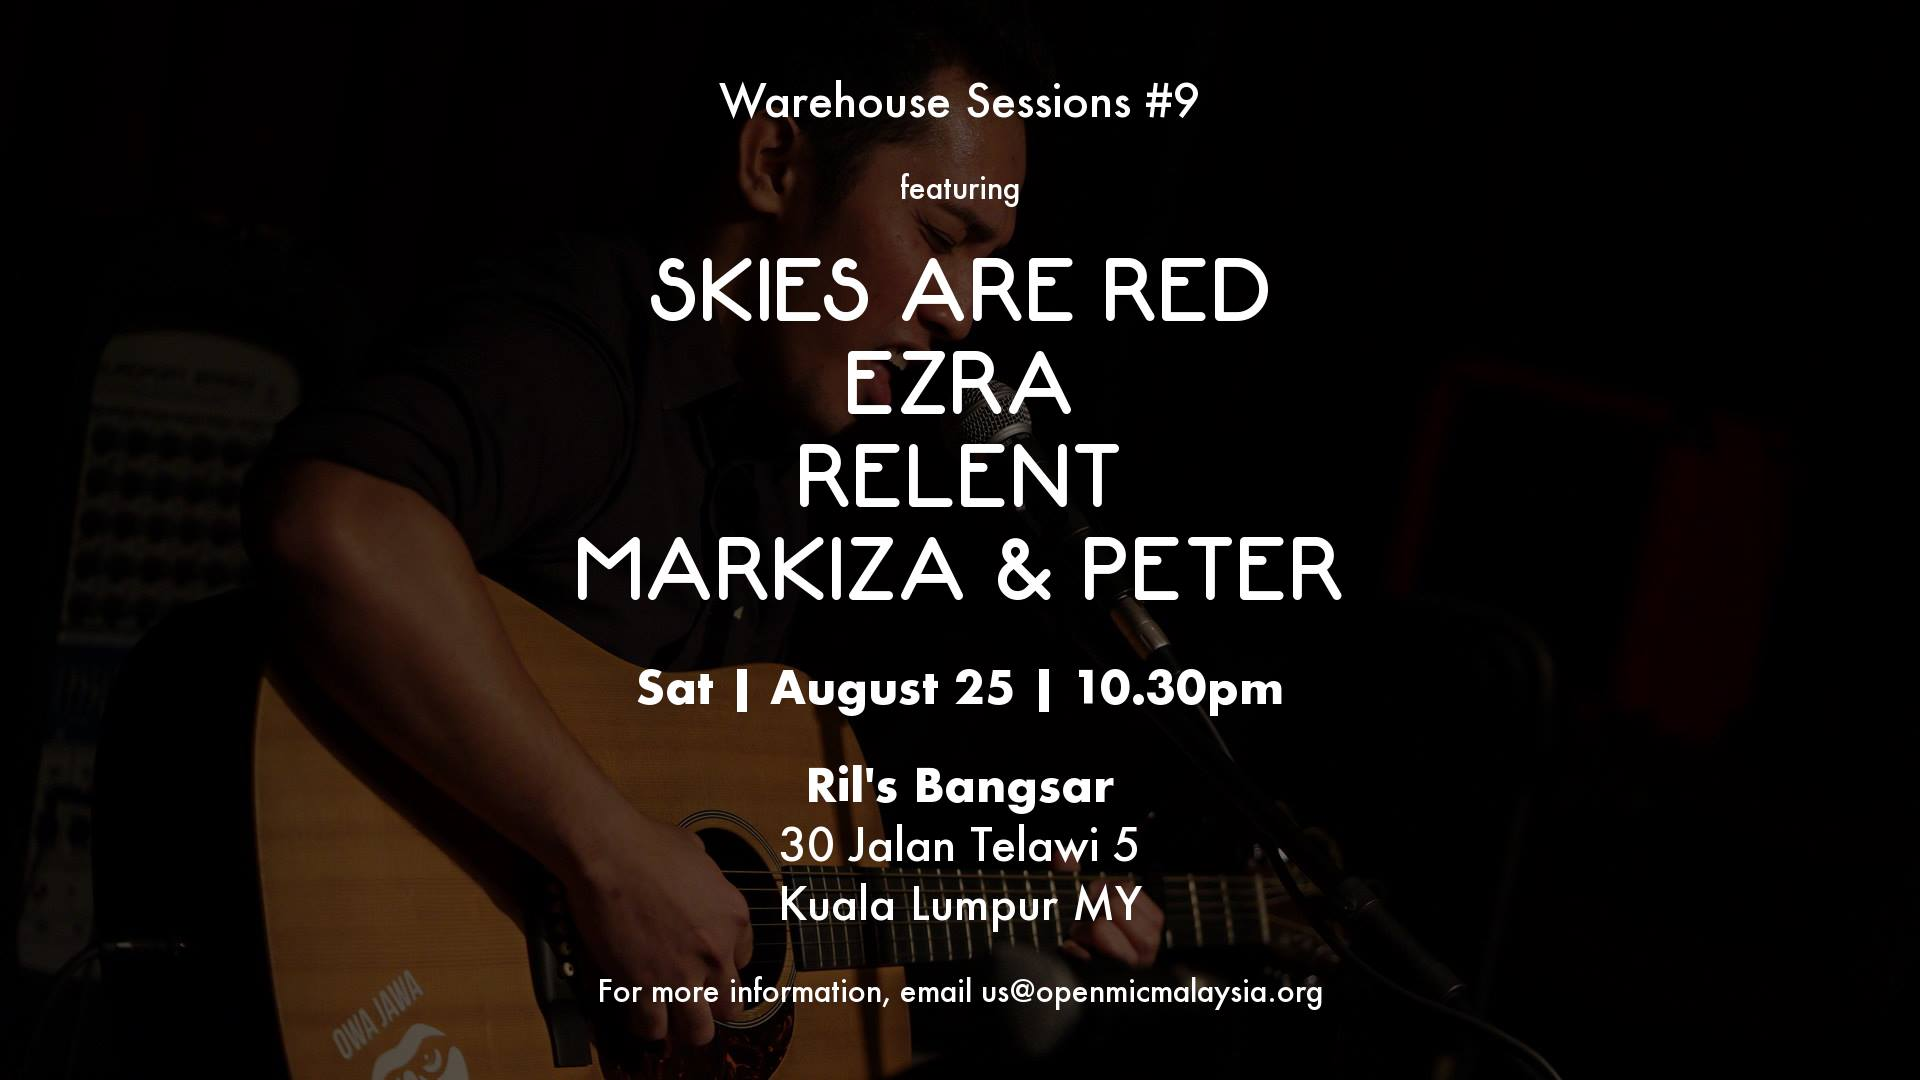 Warehouse Sessions #9